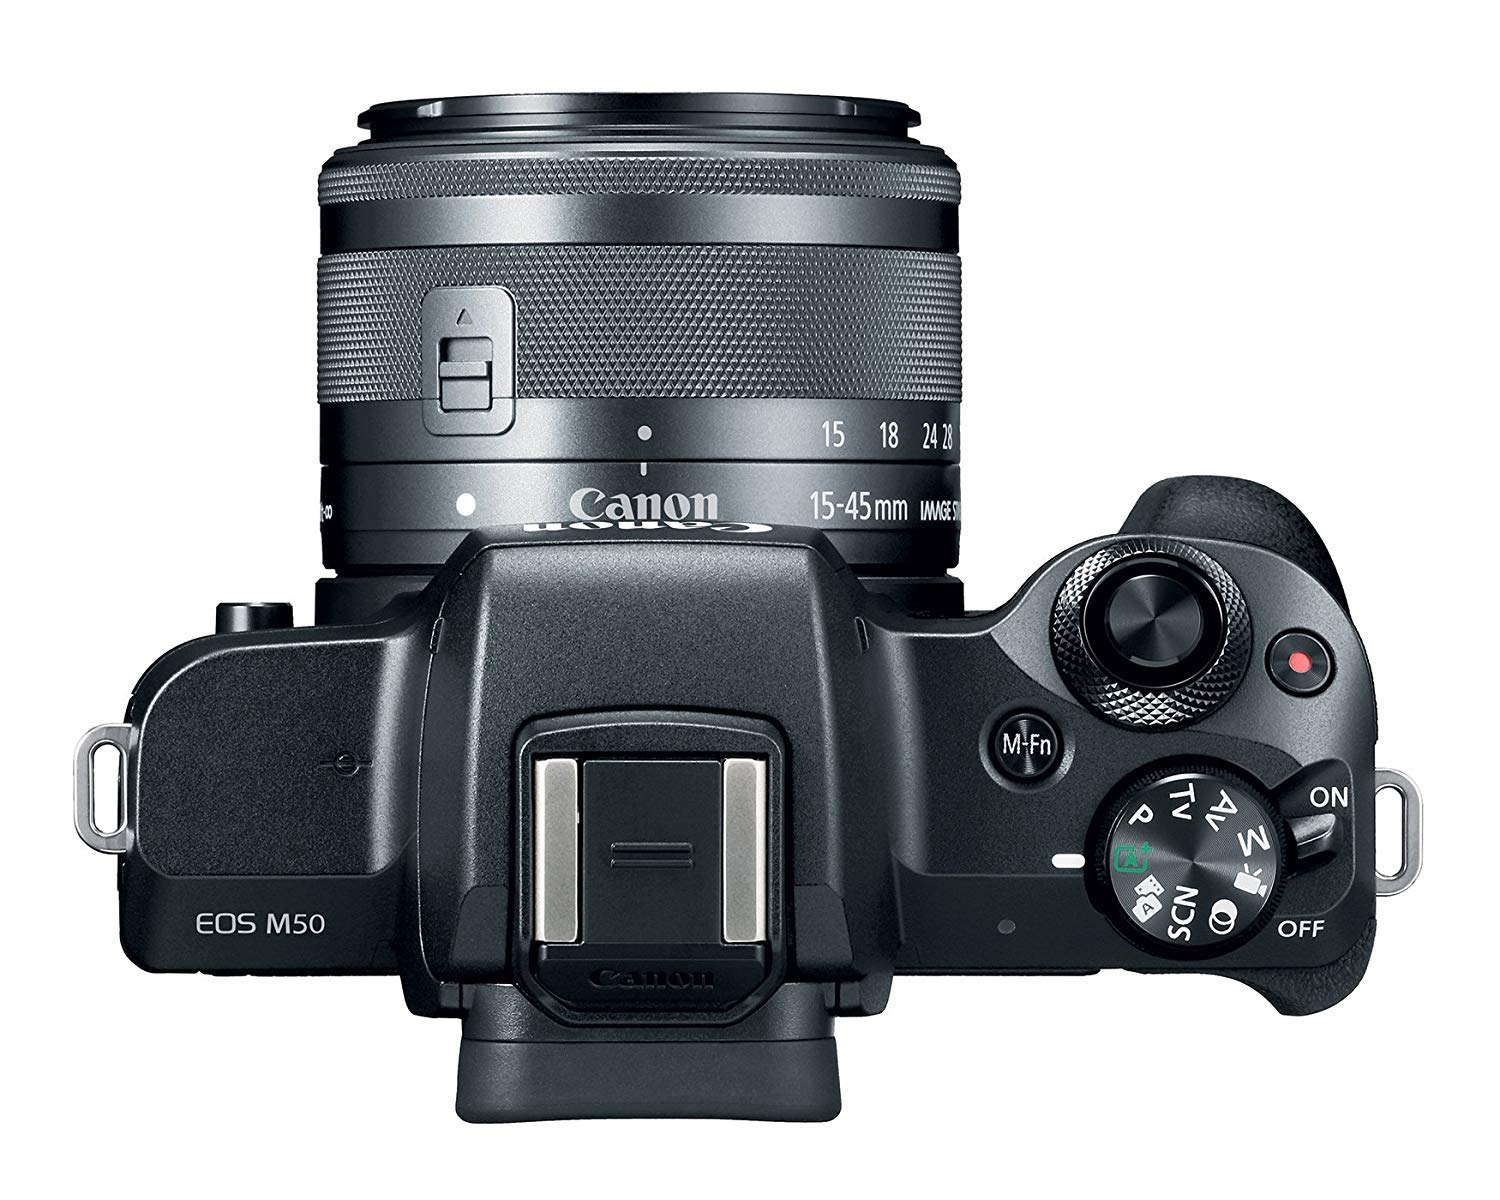 Canon EOS M50 Mirrorless Camera with EF-M 15-45mm f/3.5-6.3 and EF-M 55-200mm f/4.5-6.3 is STM Lenses, Black - Bundle with 16GB SDHC Card, Camera Case, 49mm/52mm Filter Kits, Cleaning Kit, and More by Canon (Image #3)